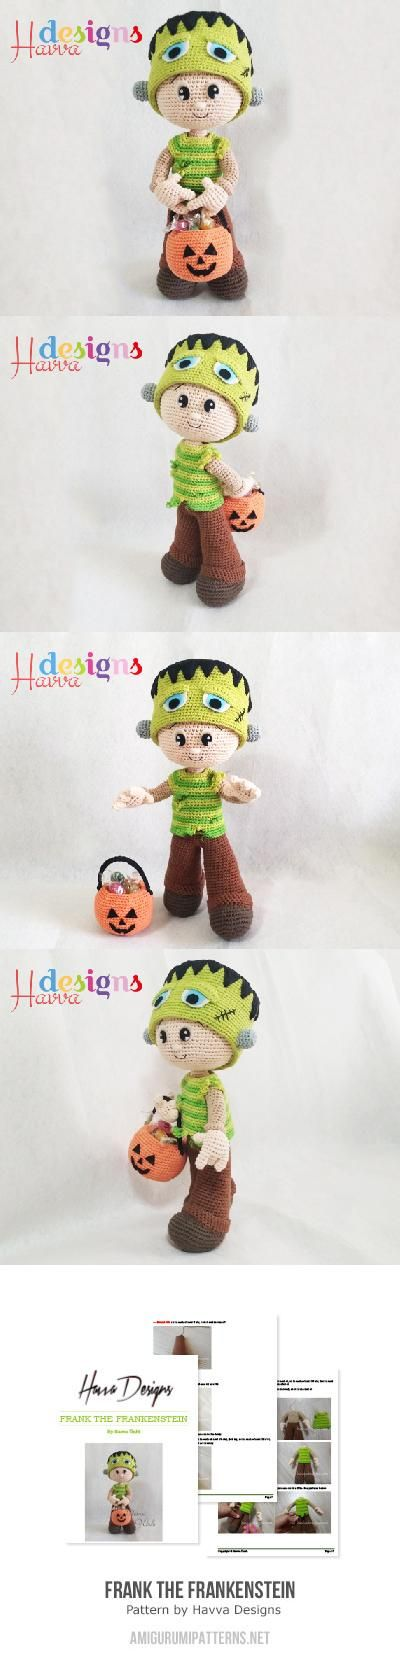 Frank the Frankenstein amigurumi pattern by Havva Designs